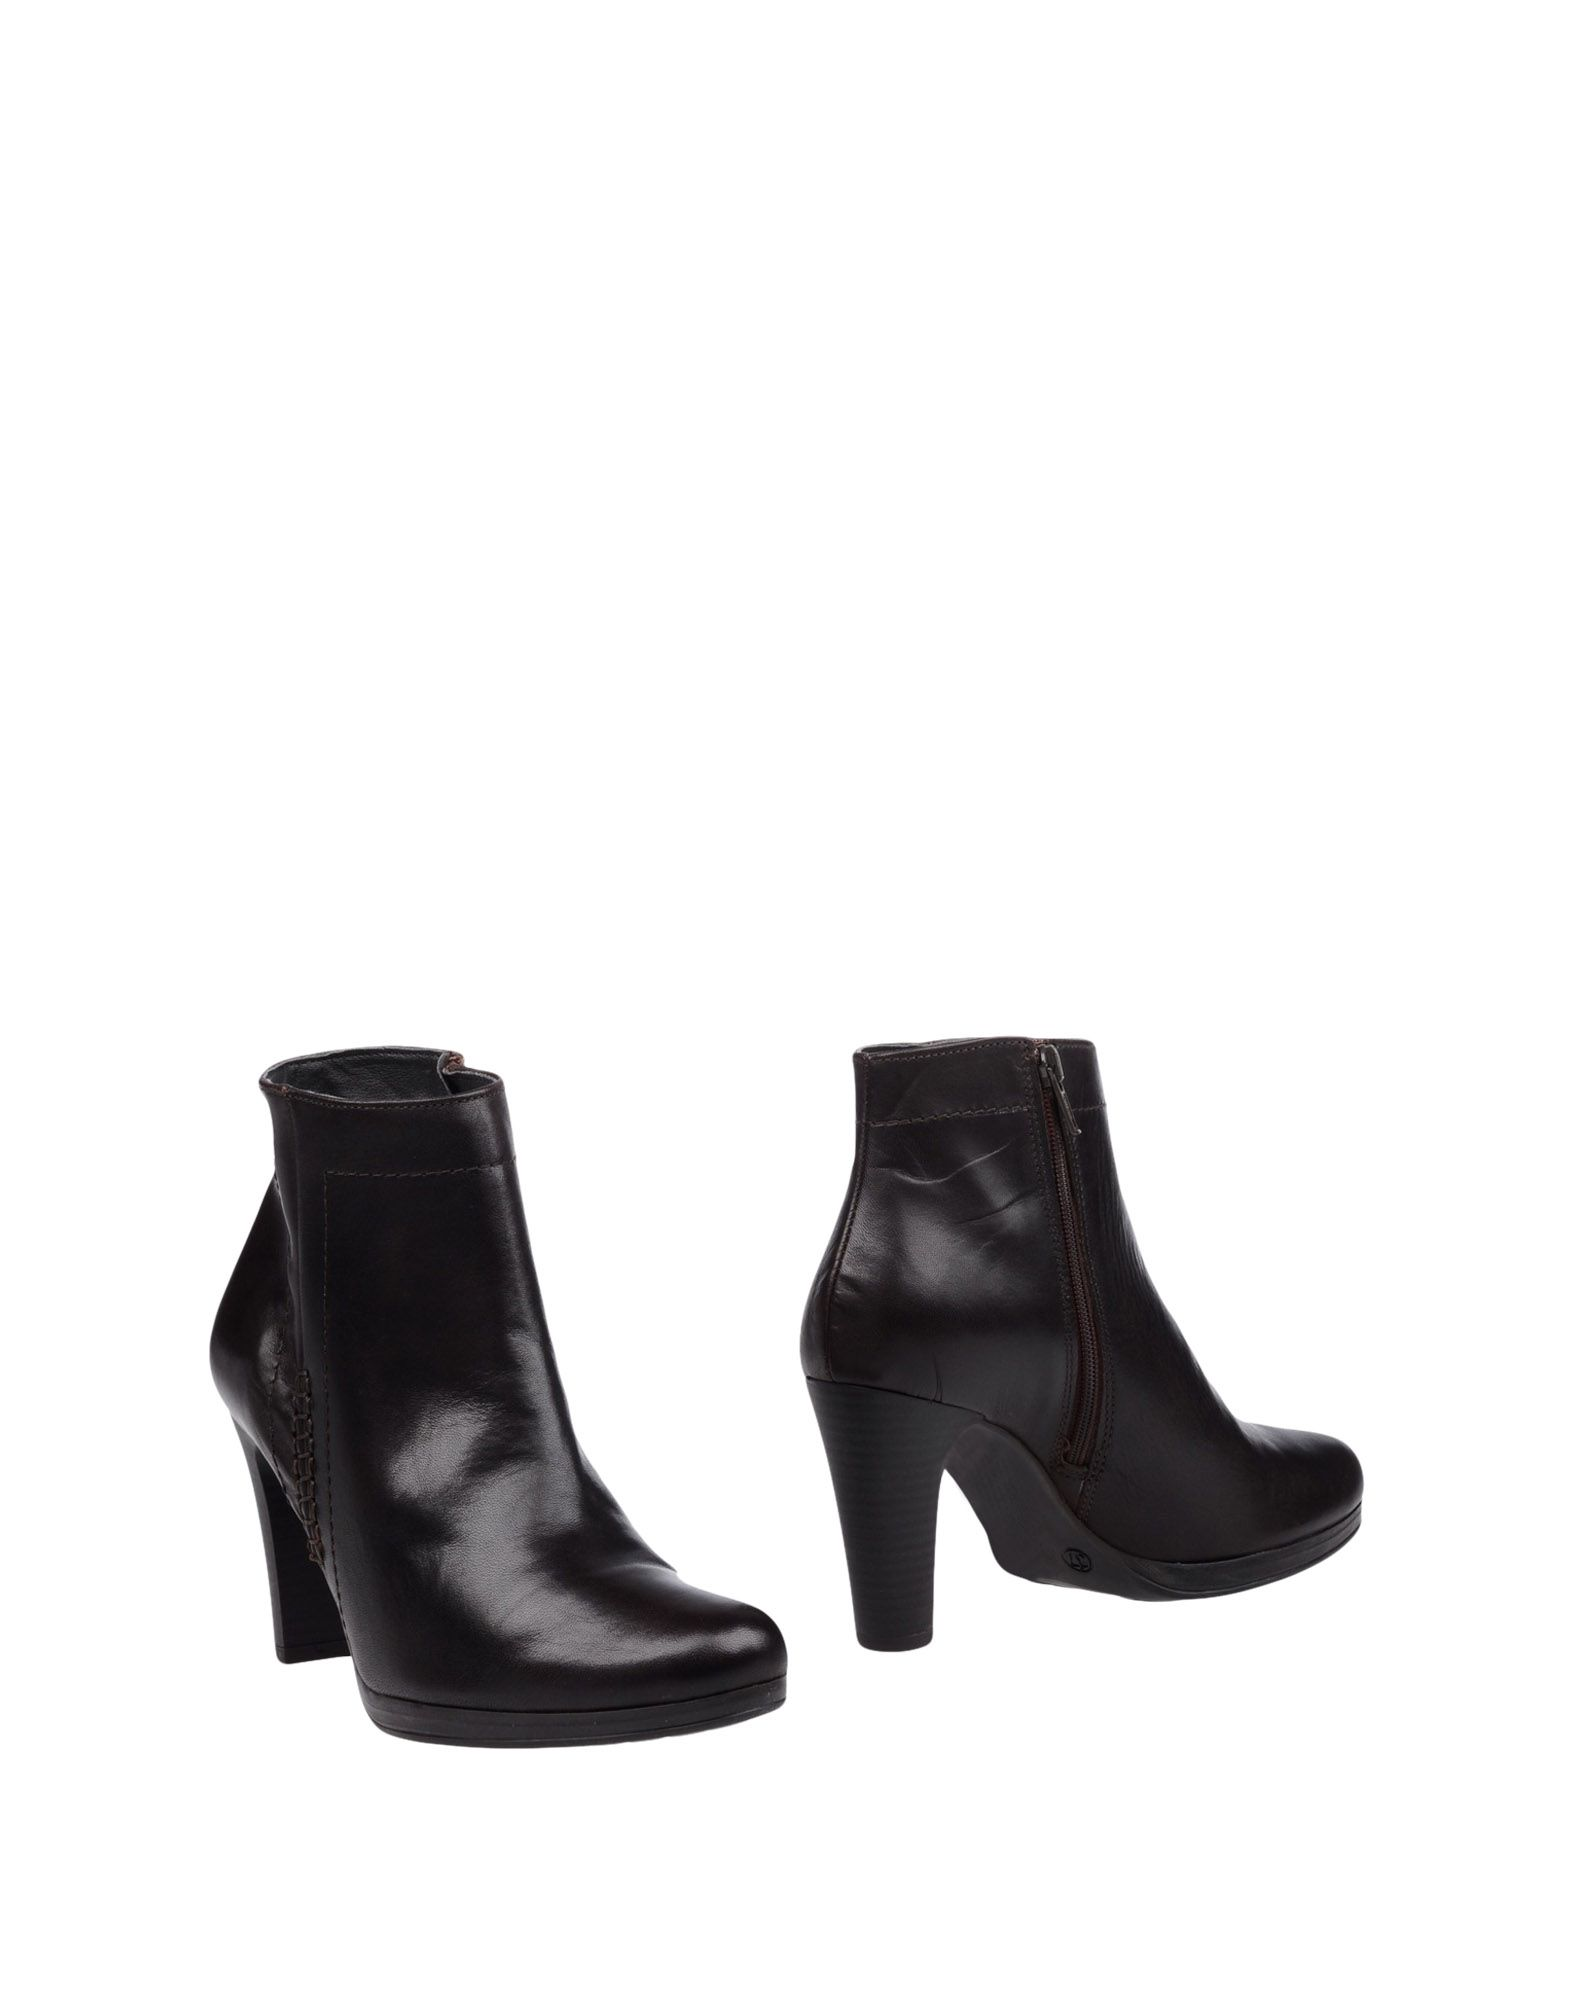 Bottine Gianni Gregori® Femme - Bottines Gianni Gregori® sur